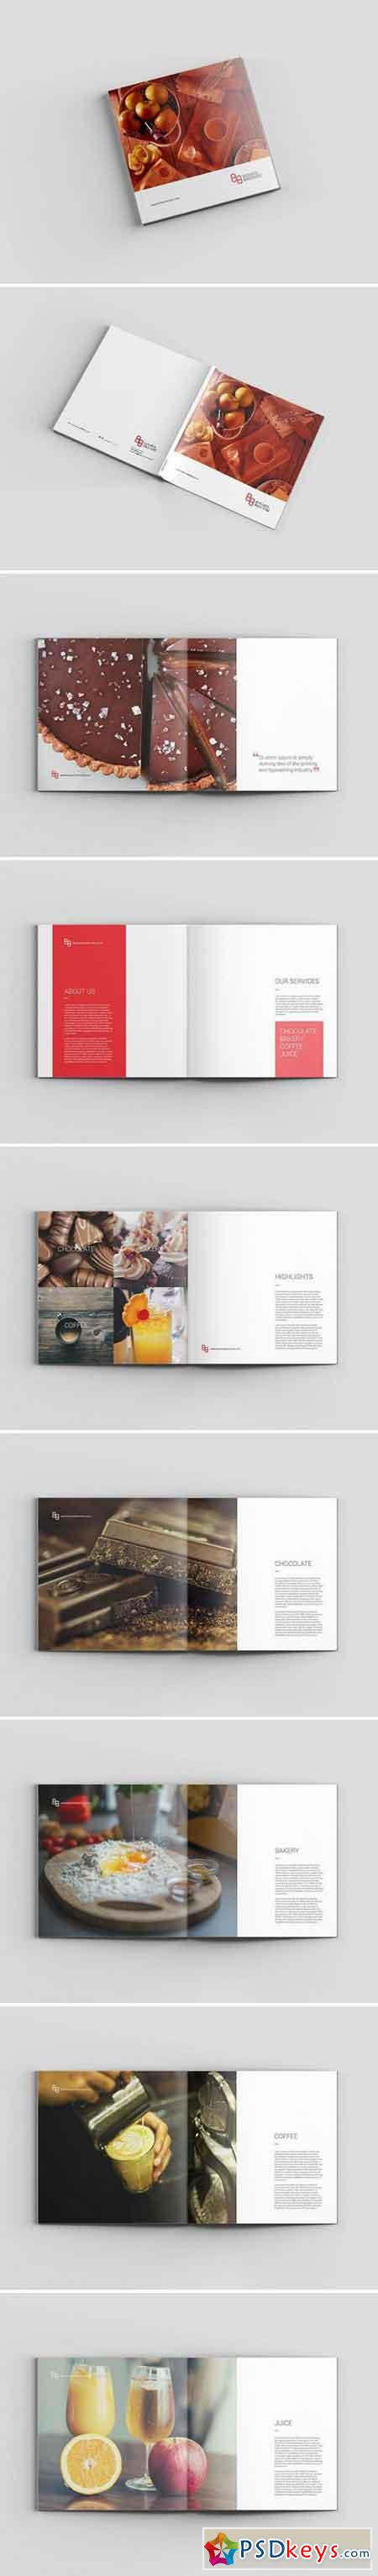 Square Business Brochure 1850047